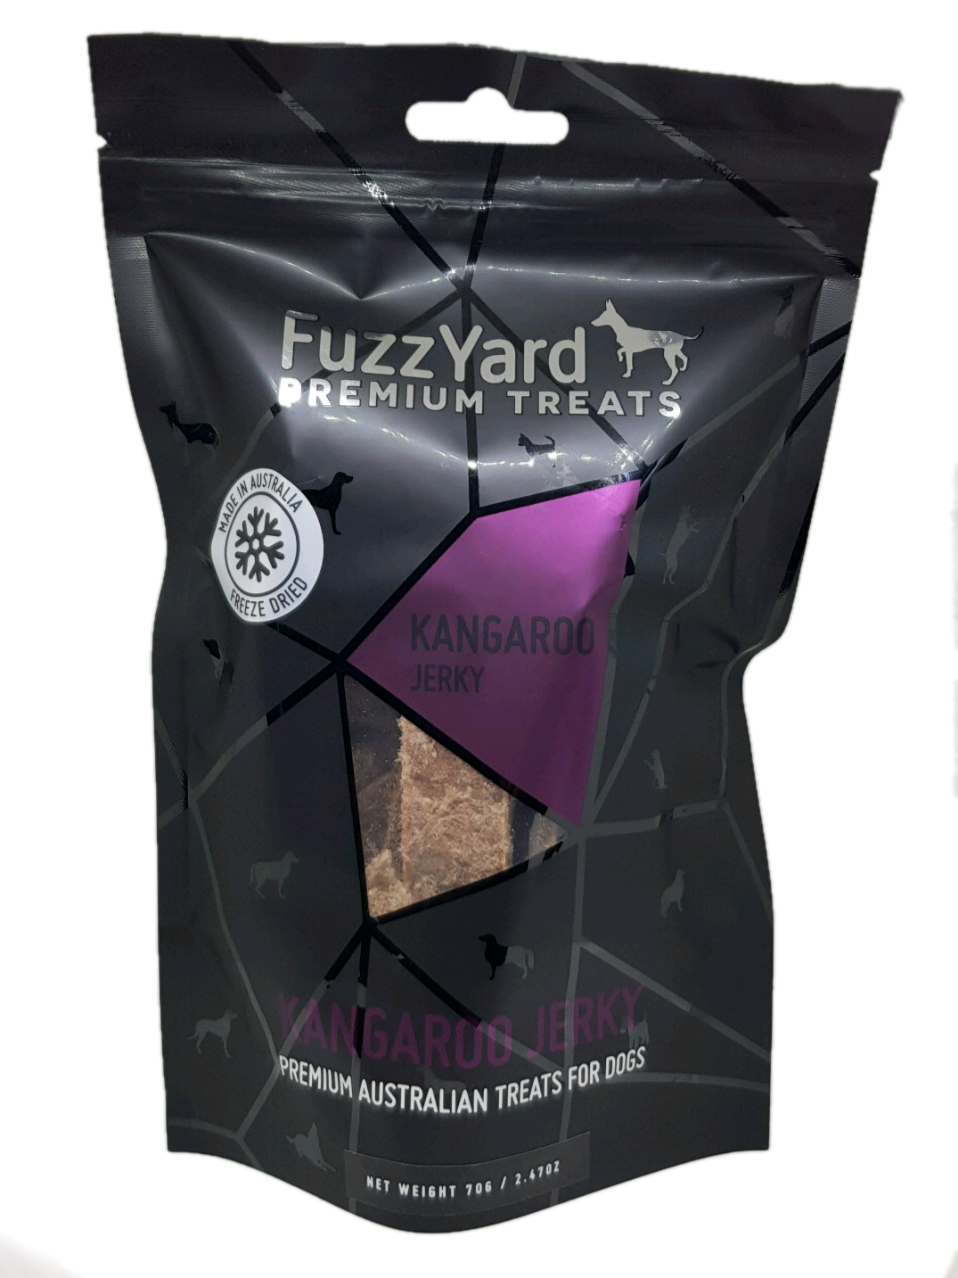 FuzzYard Premium Treats - Kangaroo Jerky (for Dogs)